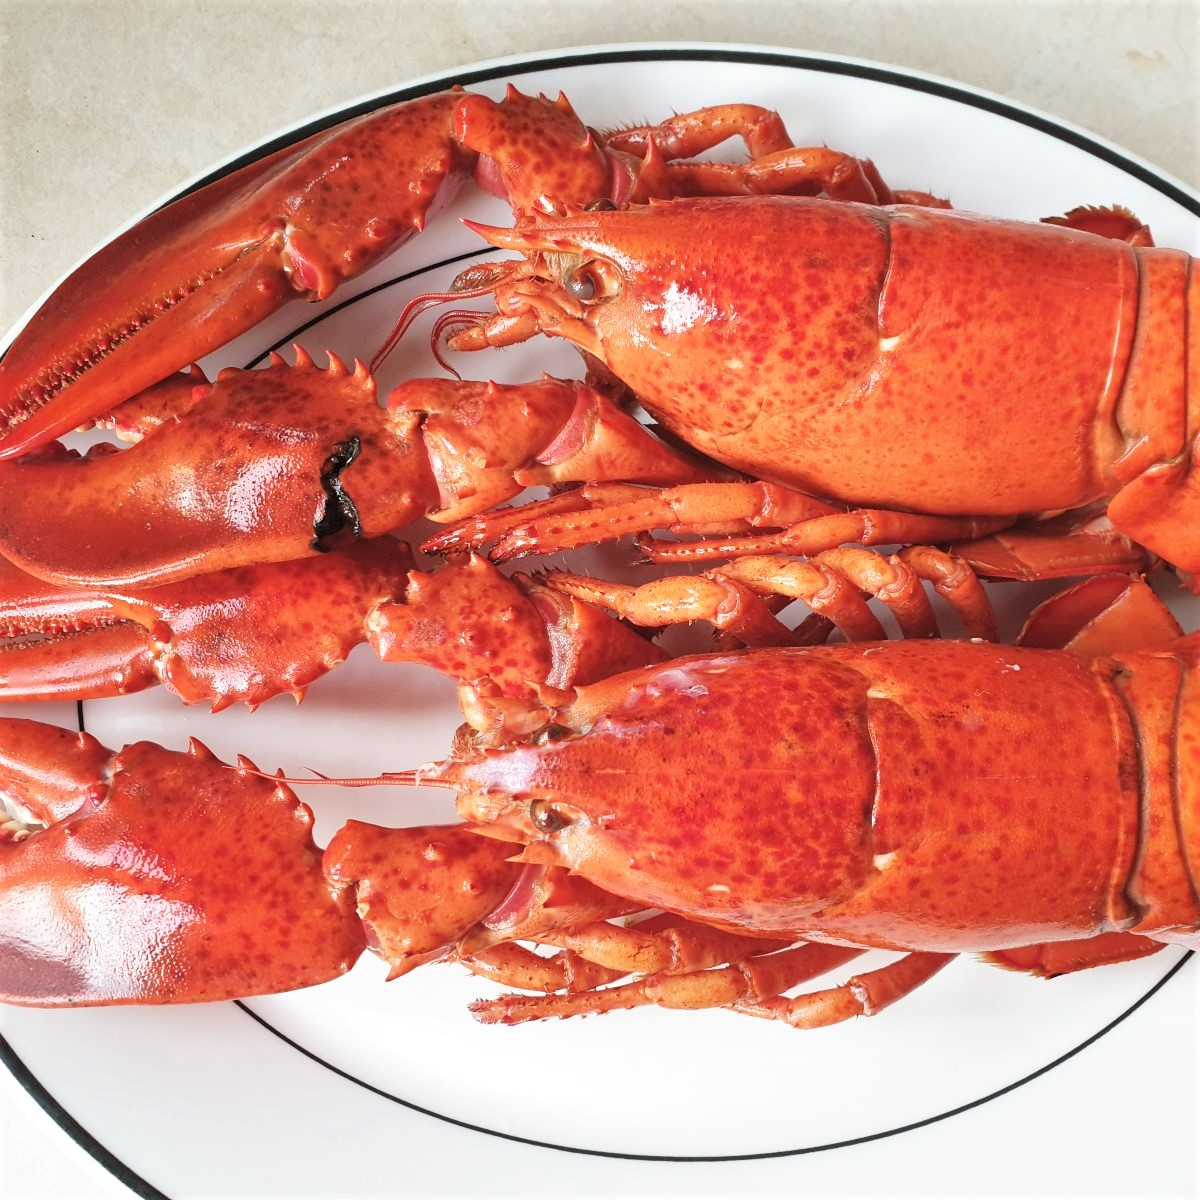 Two lobsters on a plate.